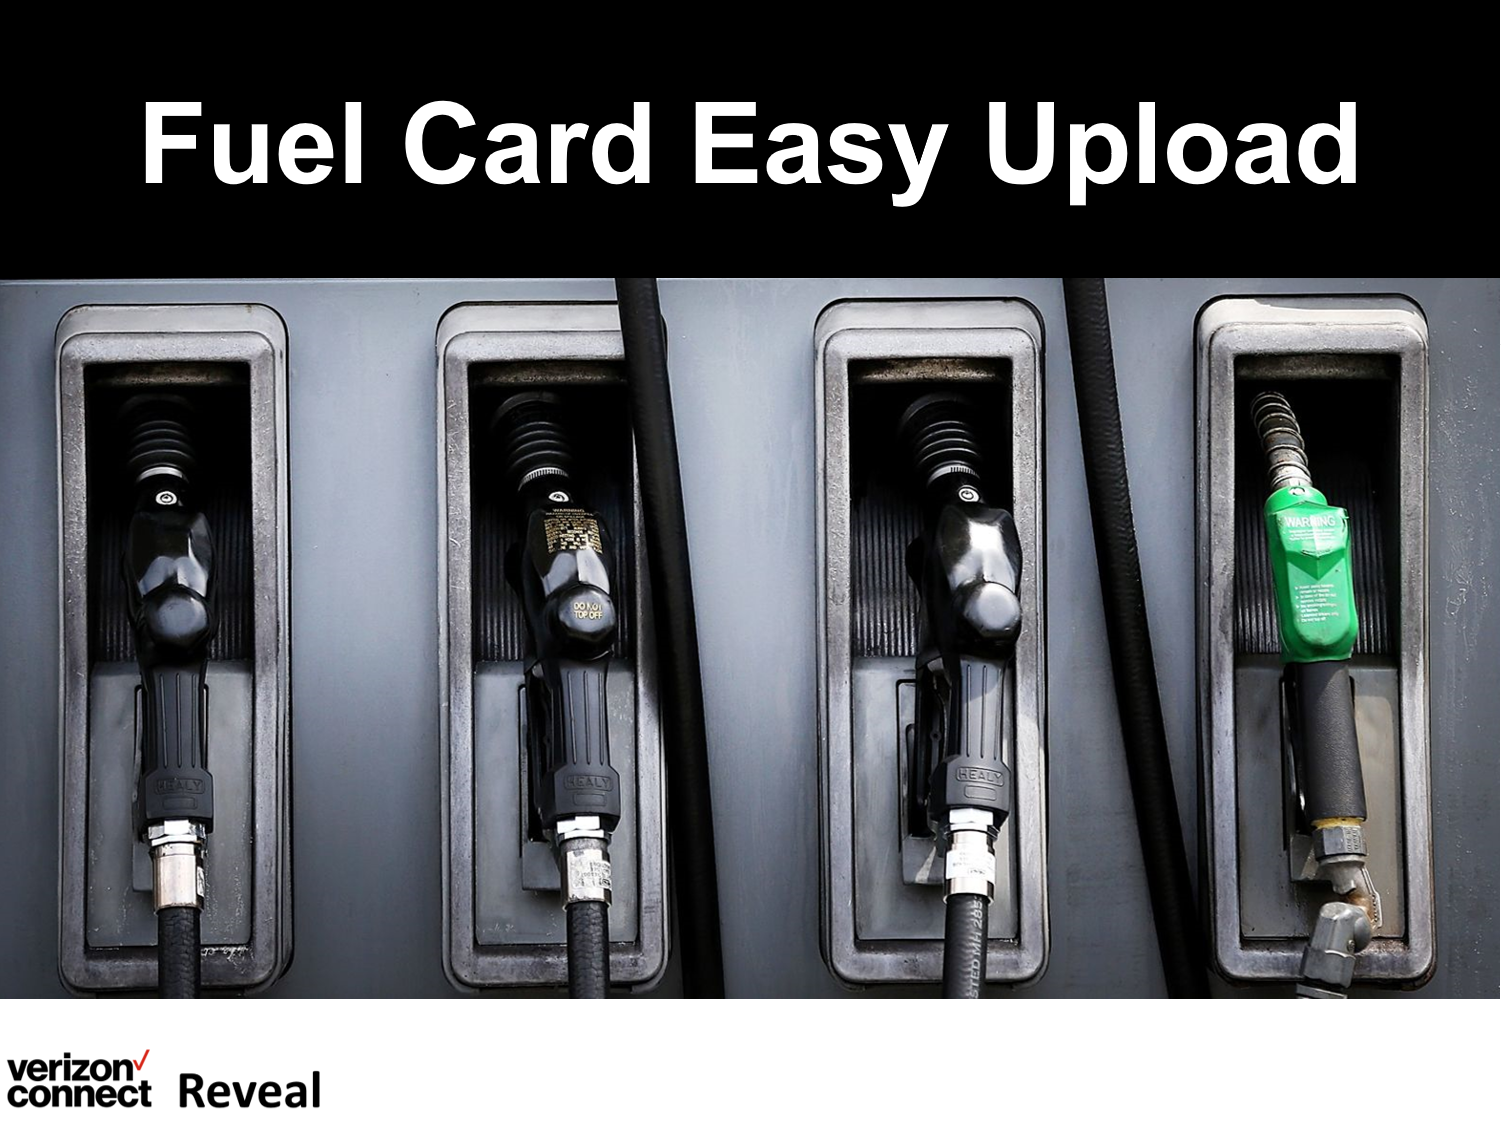 Reveal Fuel Card Easy Upload eTutorial